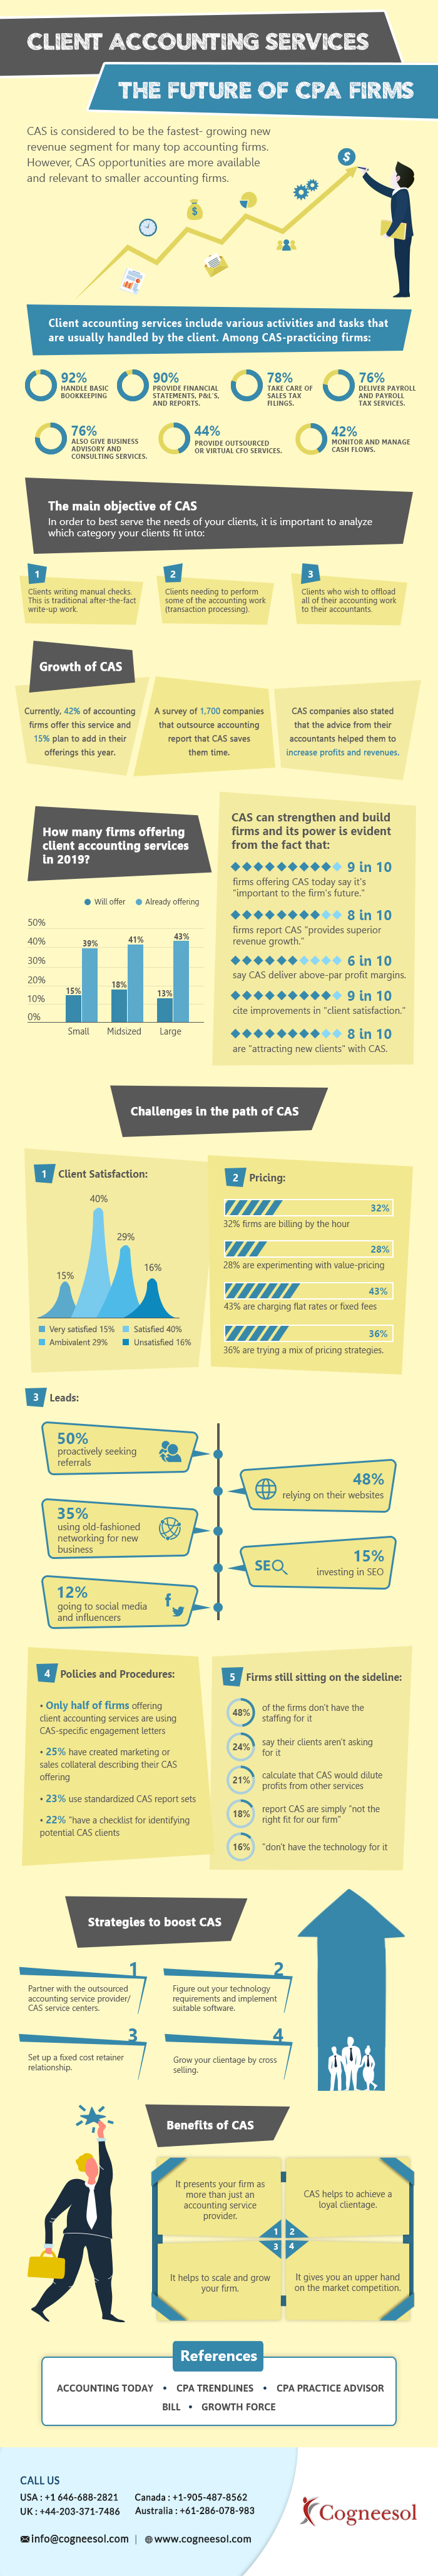 Client Accounting Services – The Future of CPA Firms [INFOGRAPHIC] #Infographic